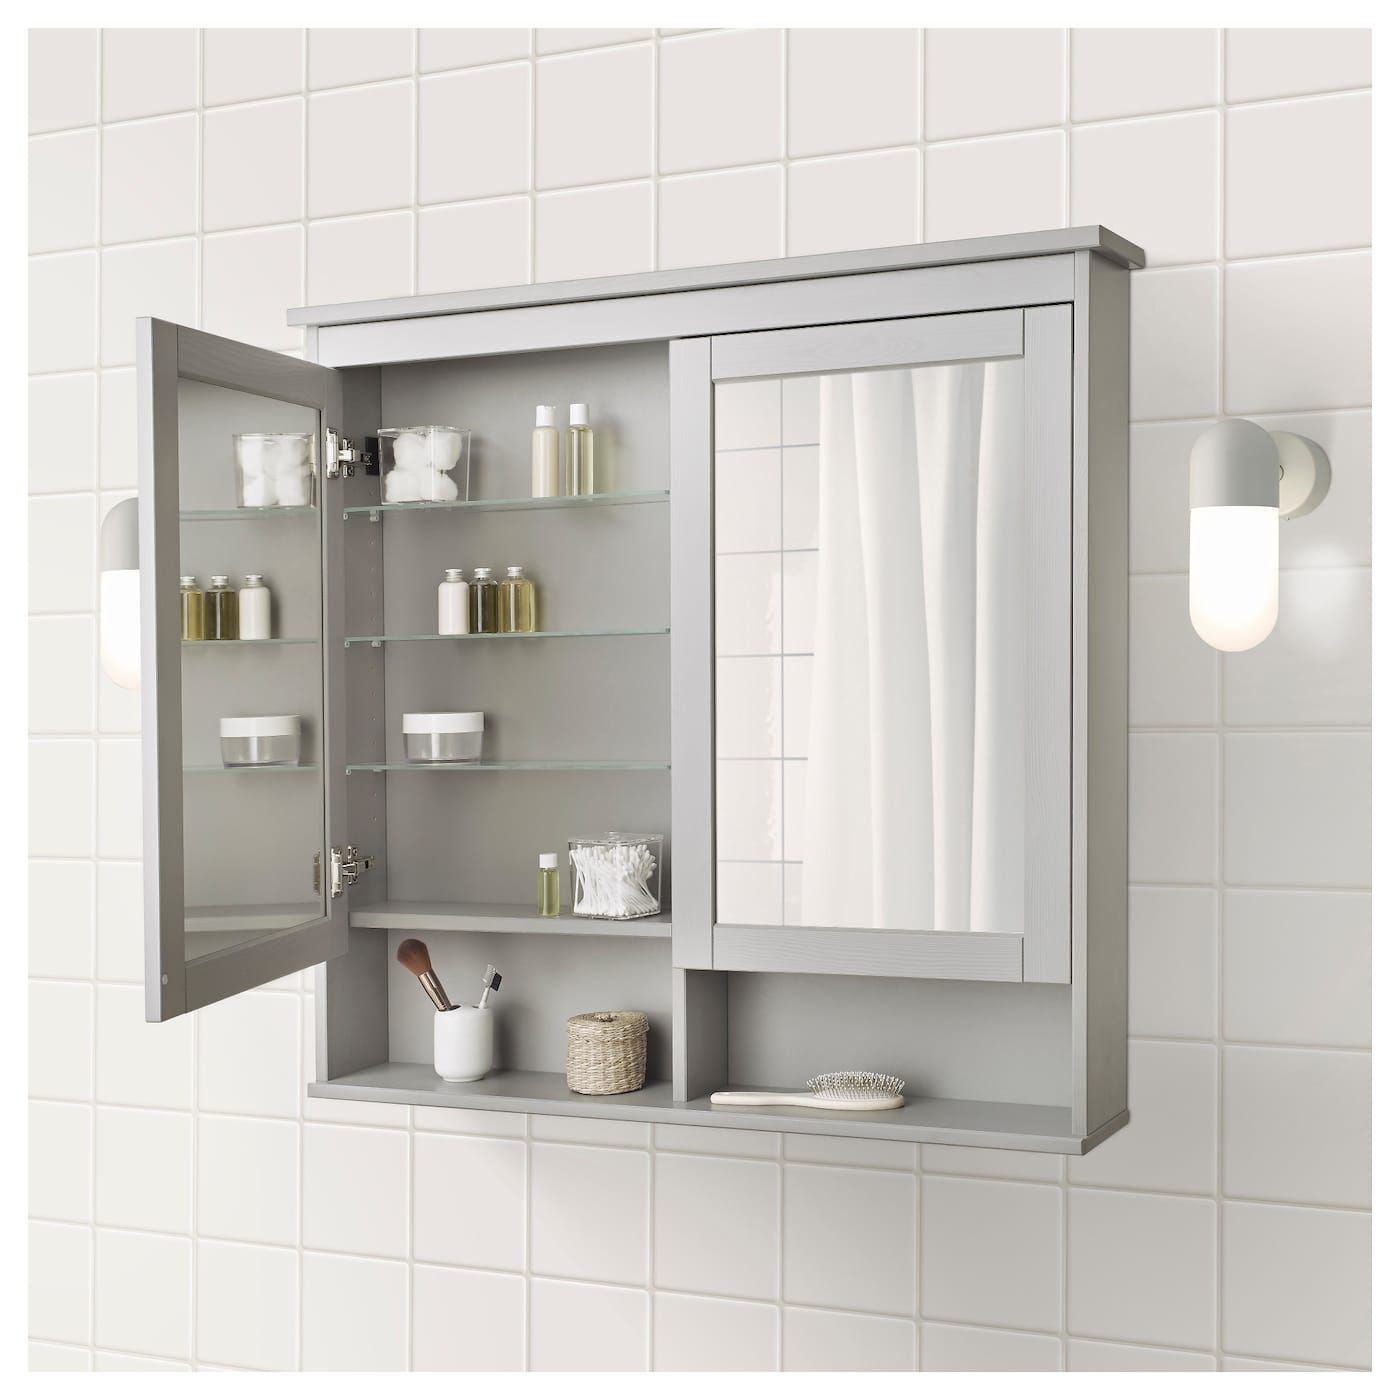 Hemnes Mirror Cabinet With 2 Doors Gray 40 1 2x6 1 4x38 5 8 Bathroom Mirror Cabinet Mirror Cabinets Ikea Hemnes Mirror